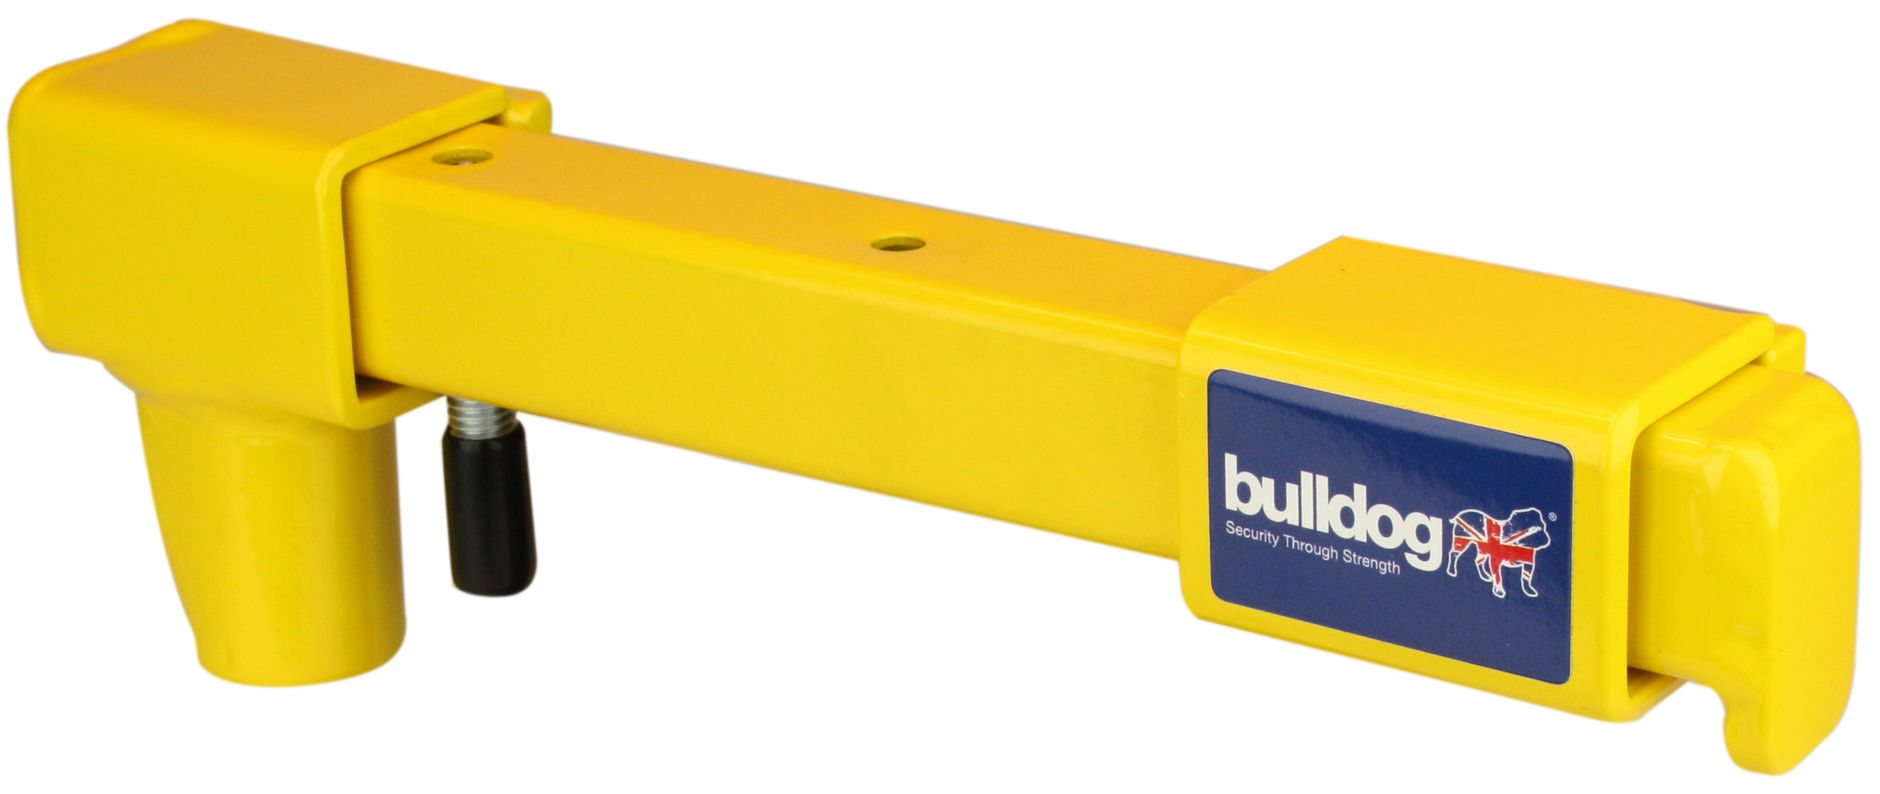 Bulldog VA102 Van Door Lock